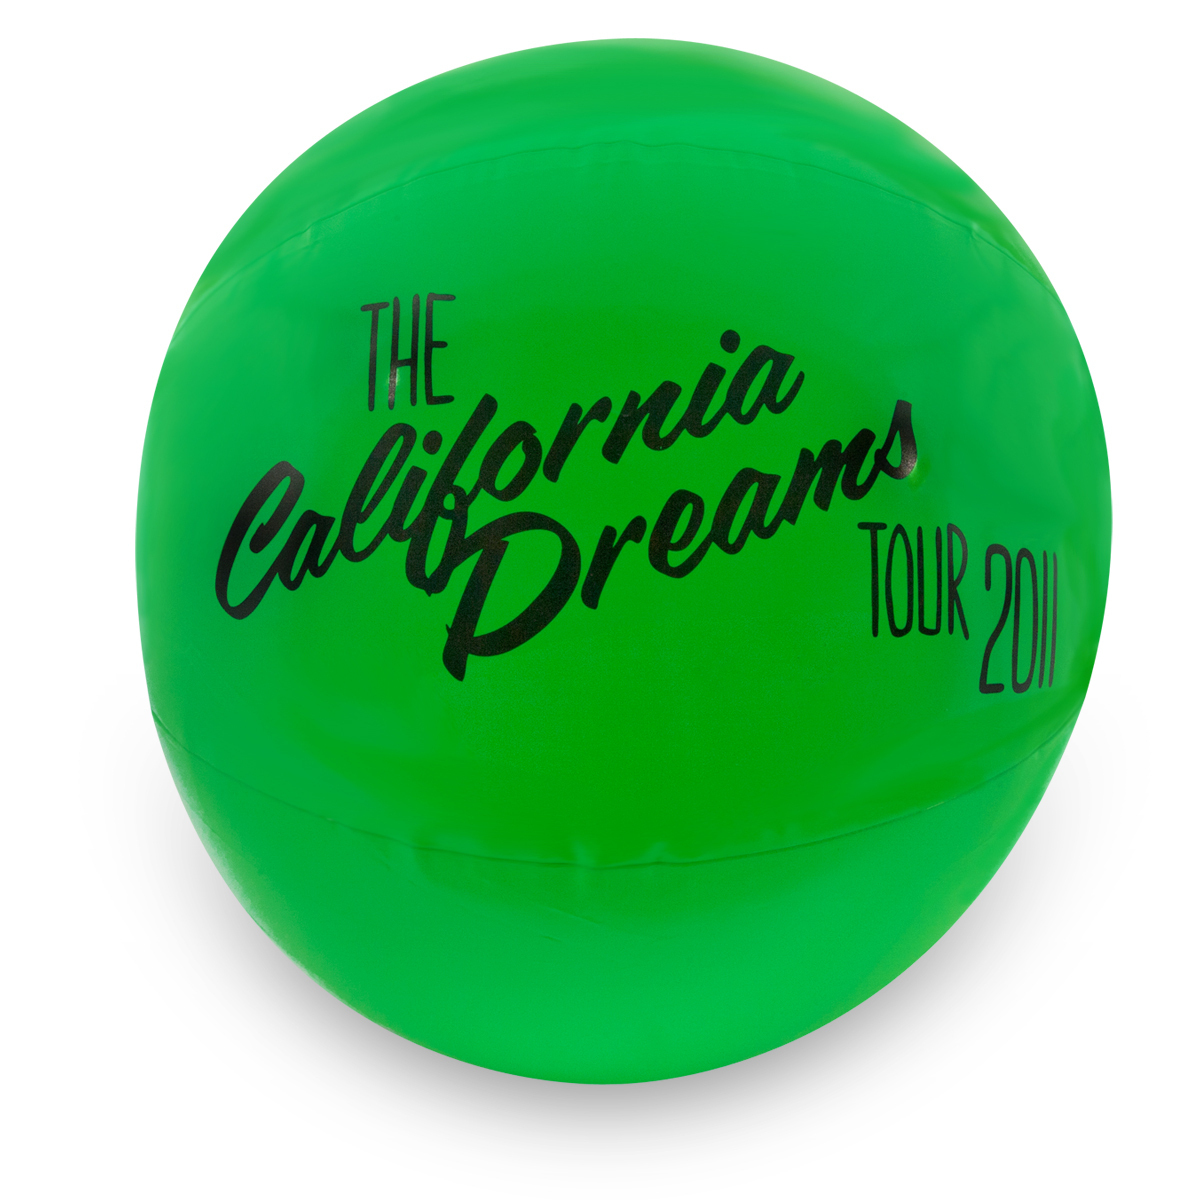 Katy Perry Green Beach Ball